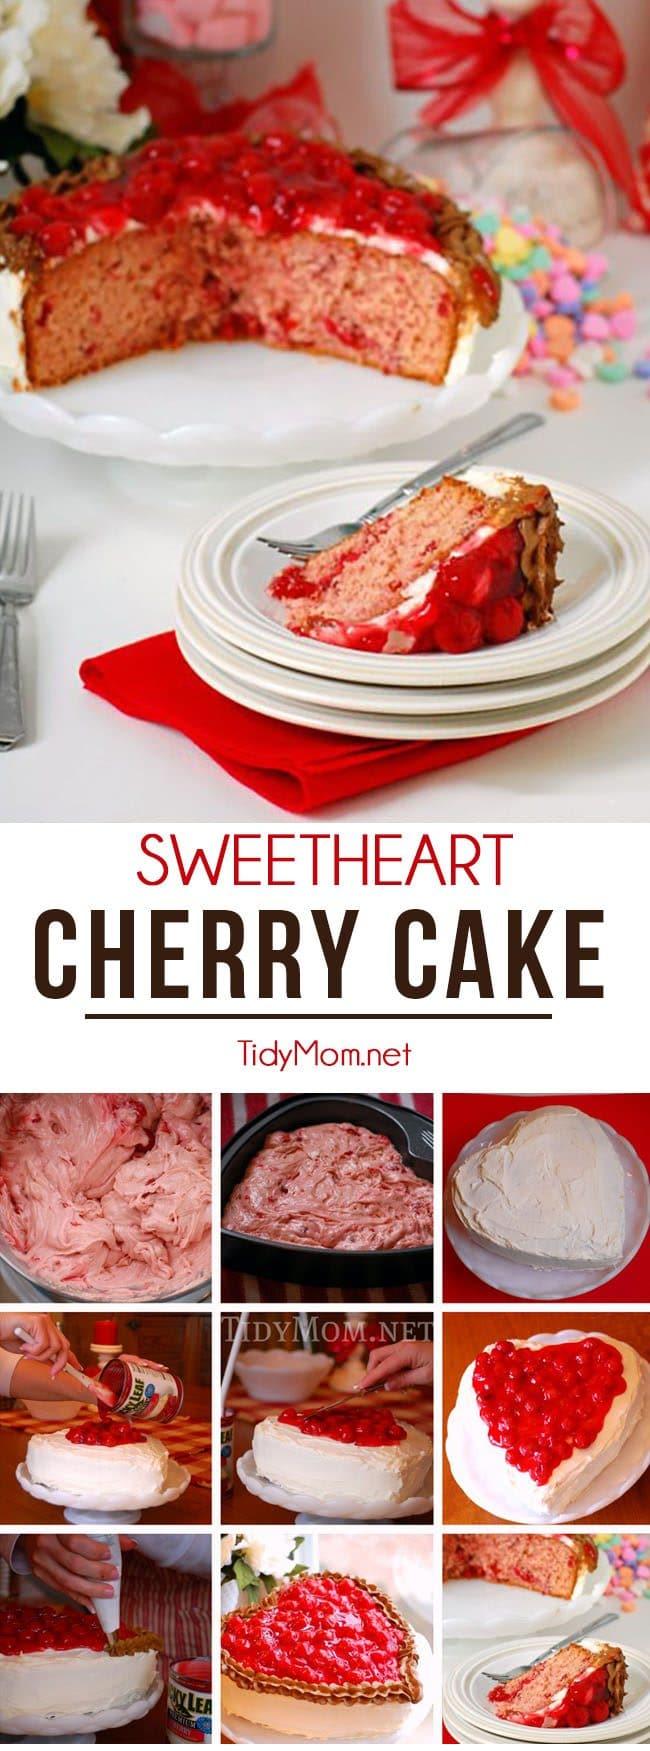 Sweetheart Cherry Cake perfect for Valentines Day. Heart shaped cake recipe at TidyMom.net